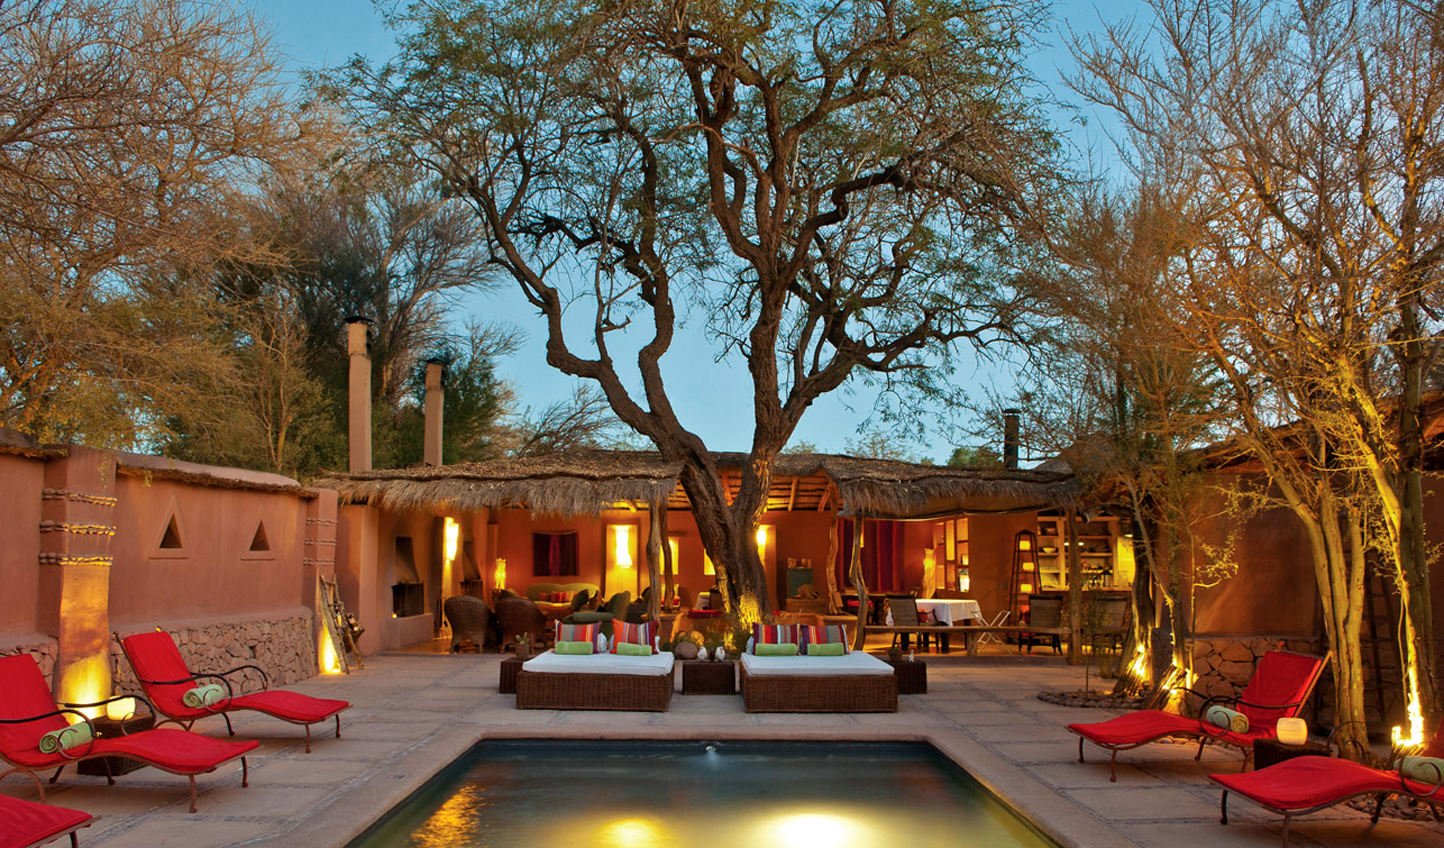 Stay at the luxurious Awasi Hotel in San Pedro de Atacama